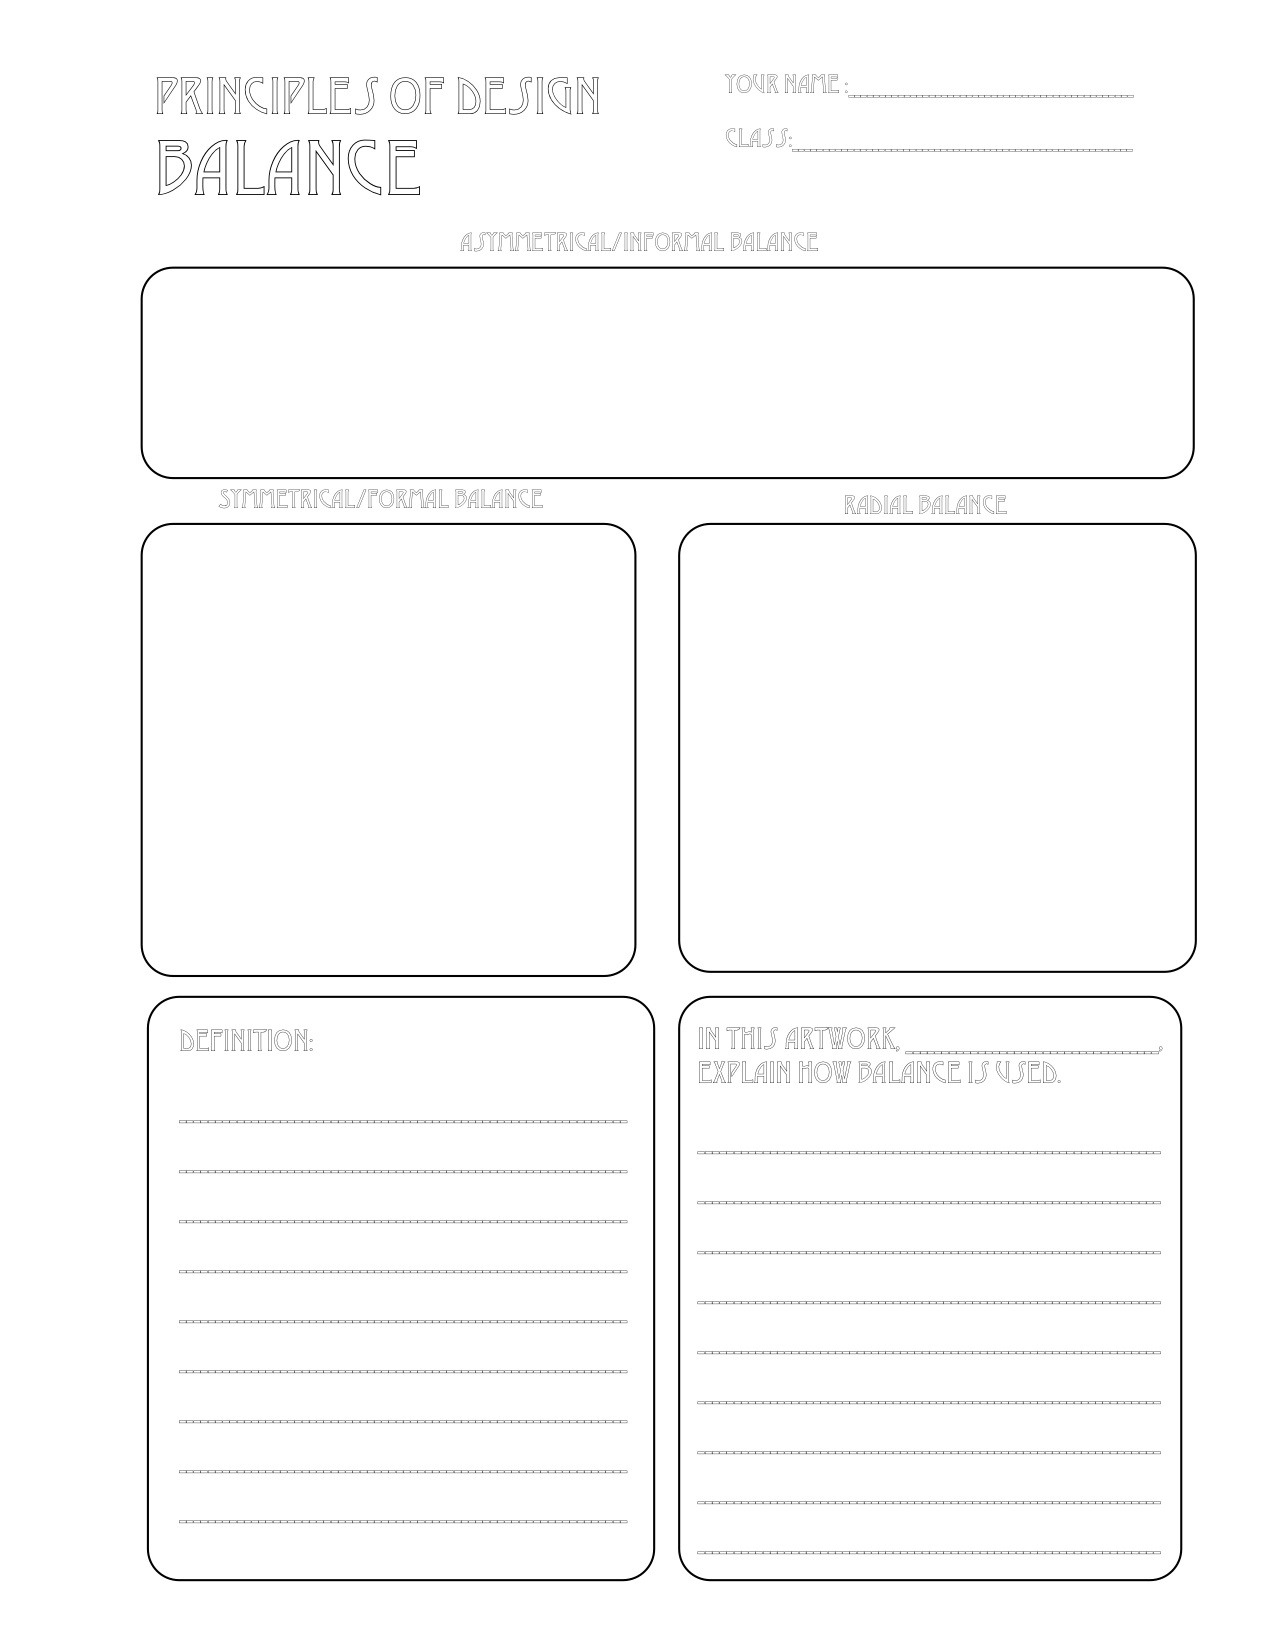 Printables Principles Of Design Worksheet printables principles of design worksheet safarmediapps the smartteacher resource balance handout for balance